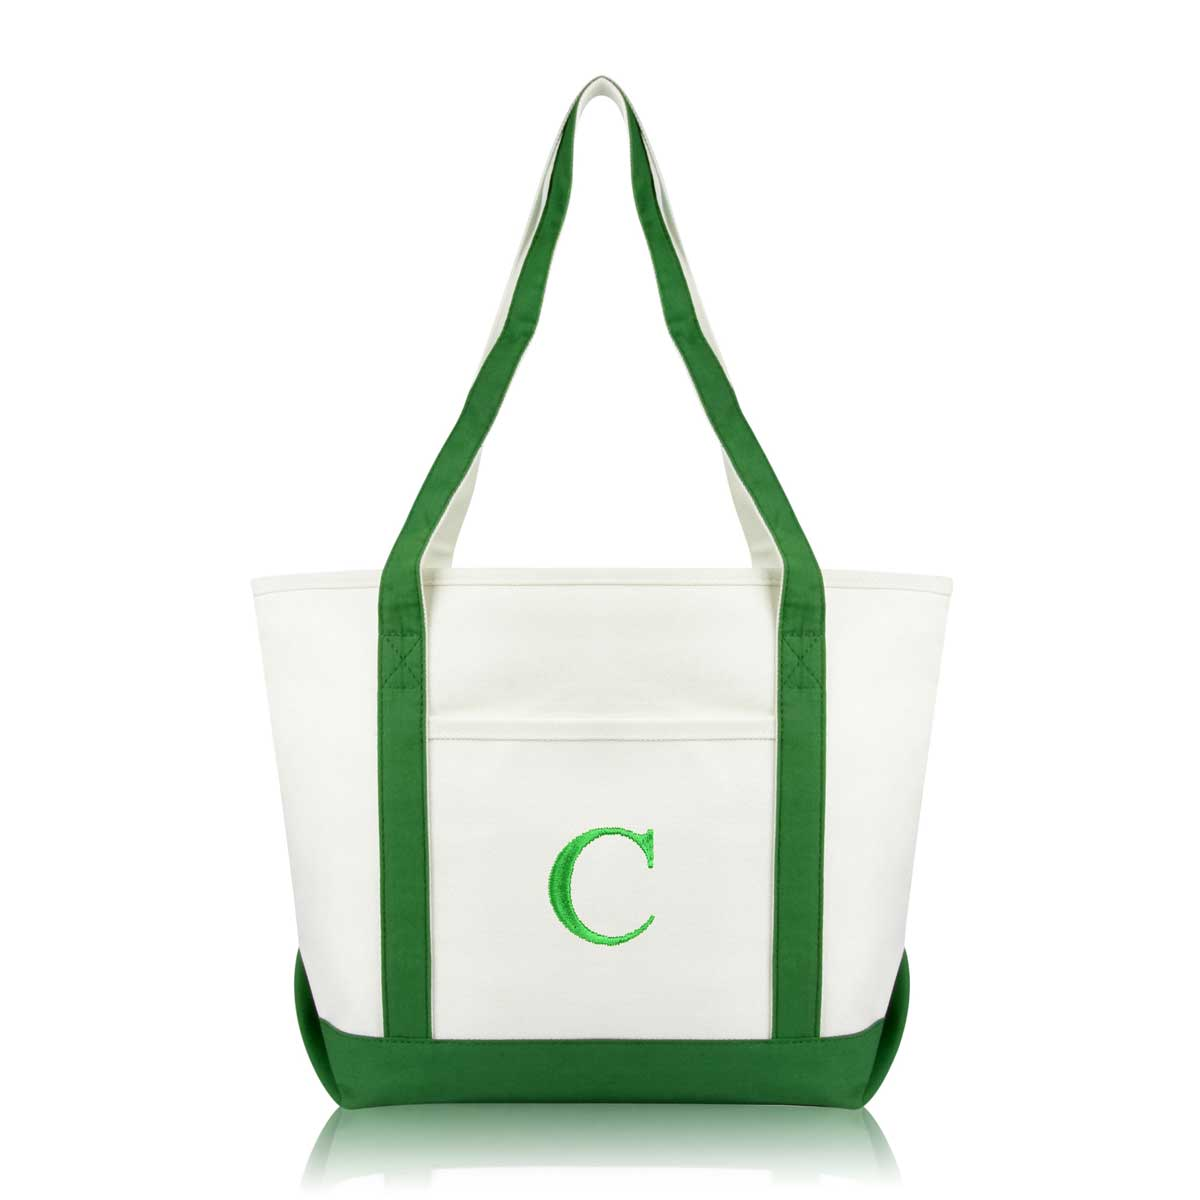 Dalix Medium Personalized Tote Bag Monogrammed Initial Letter C